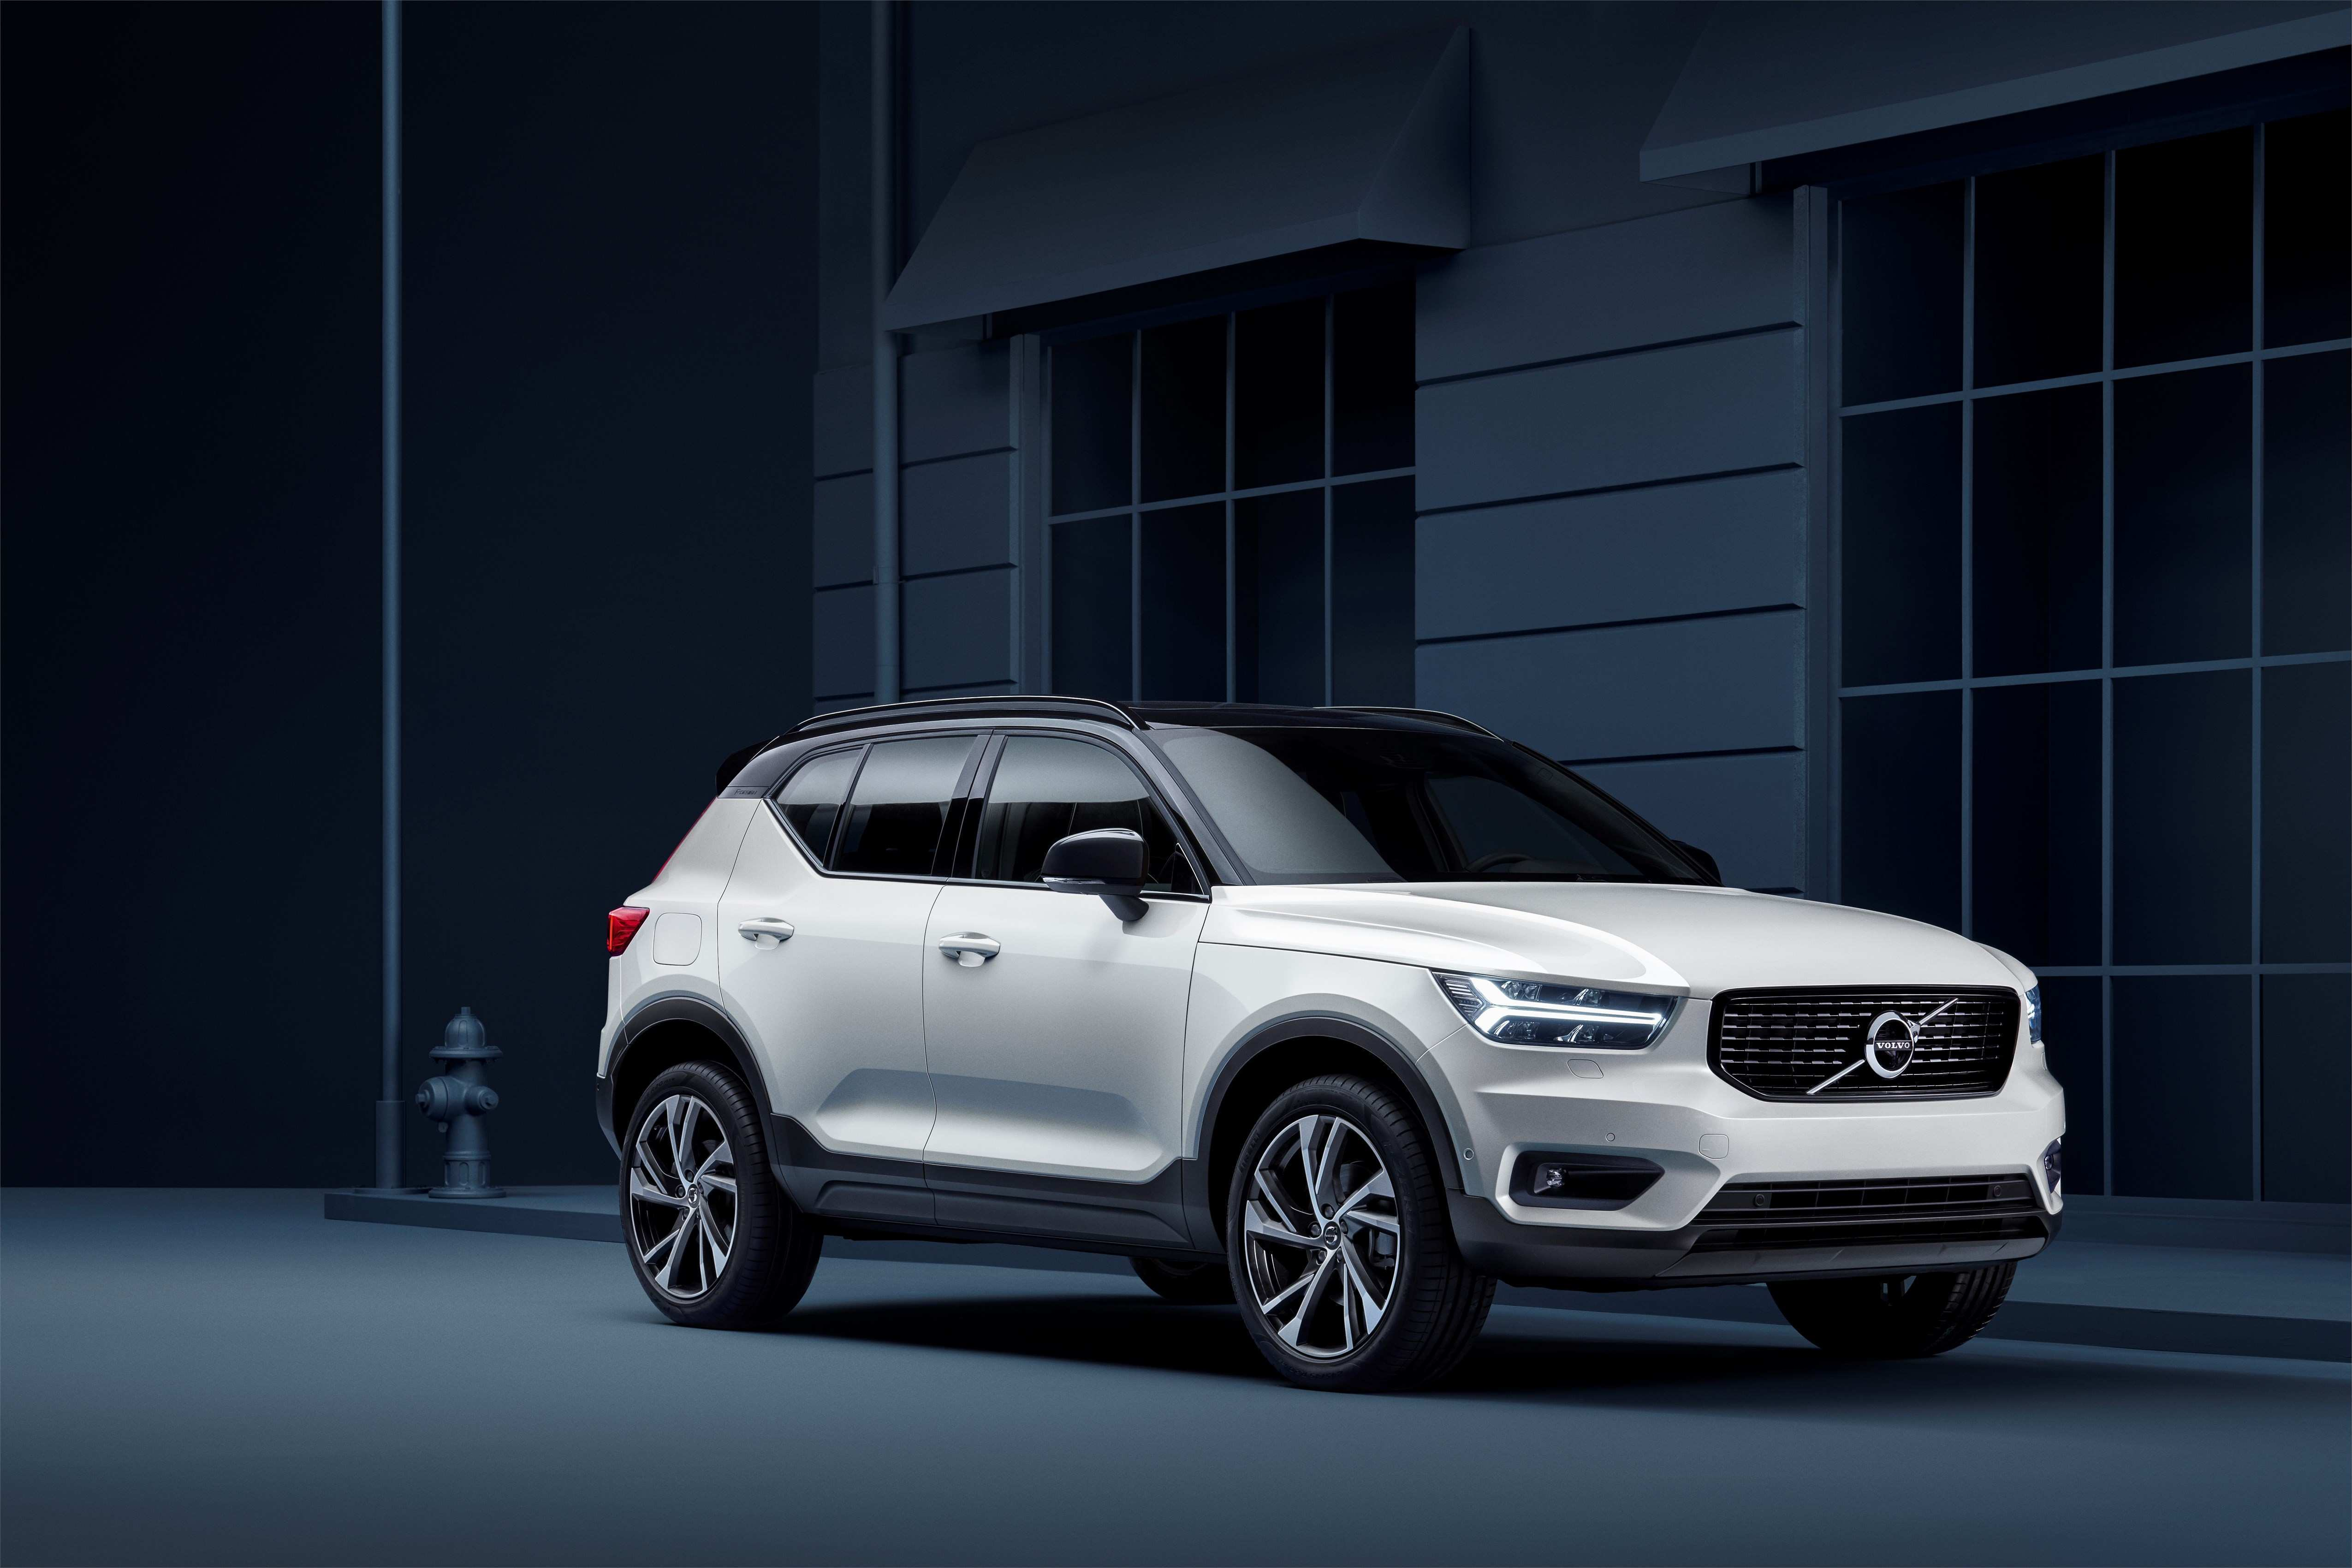 77 All New 2019 Volvo Xc40 Gas Mileage Concept